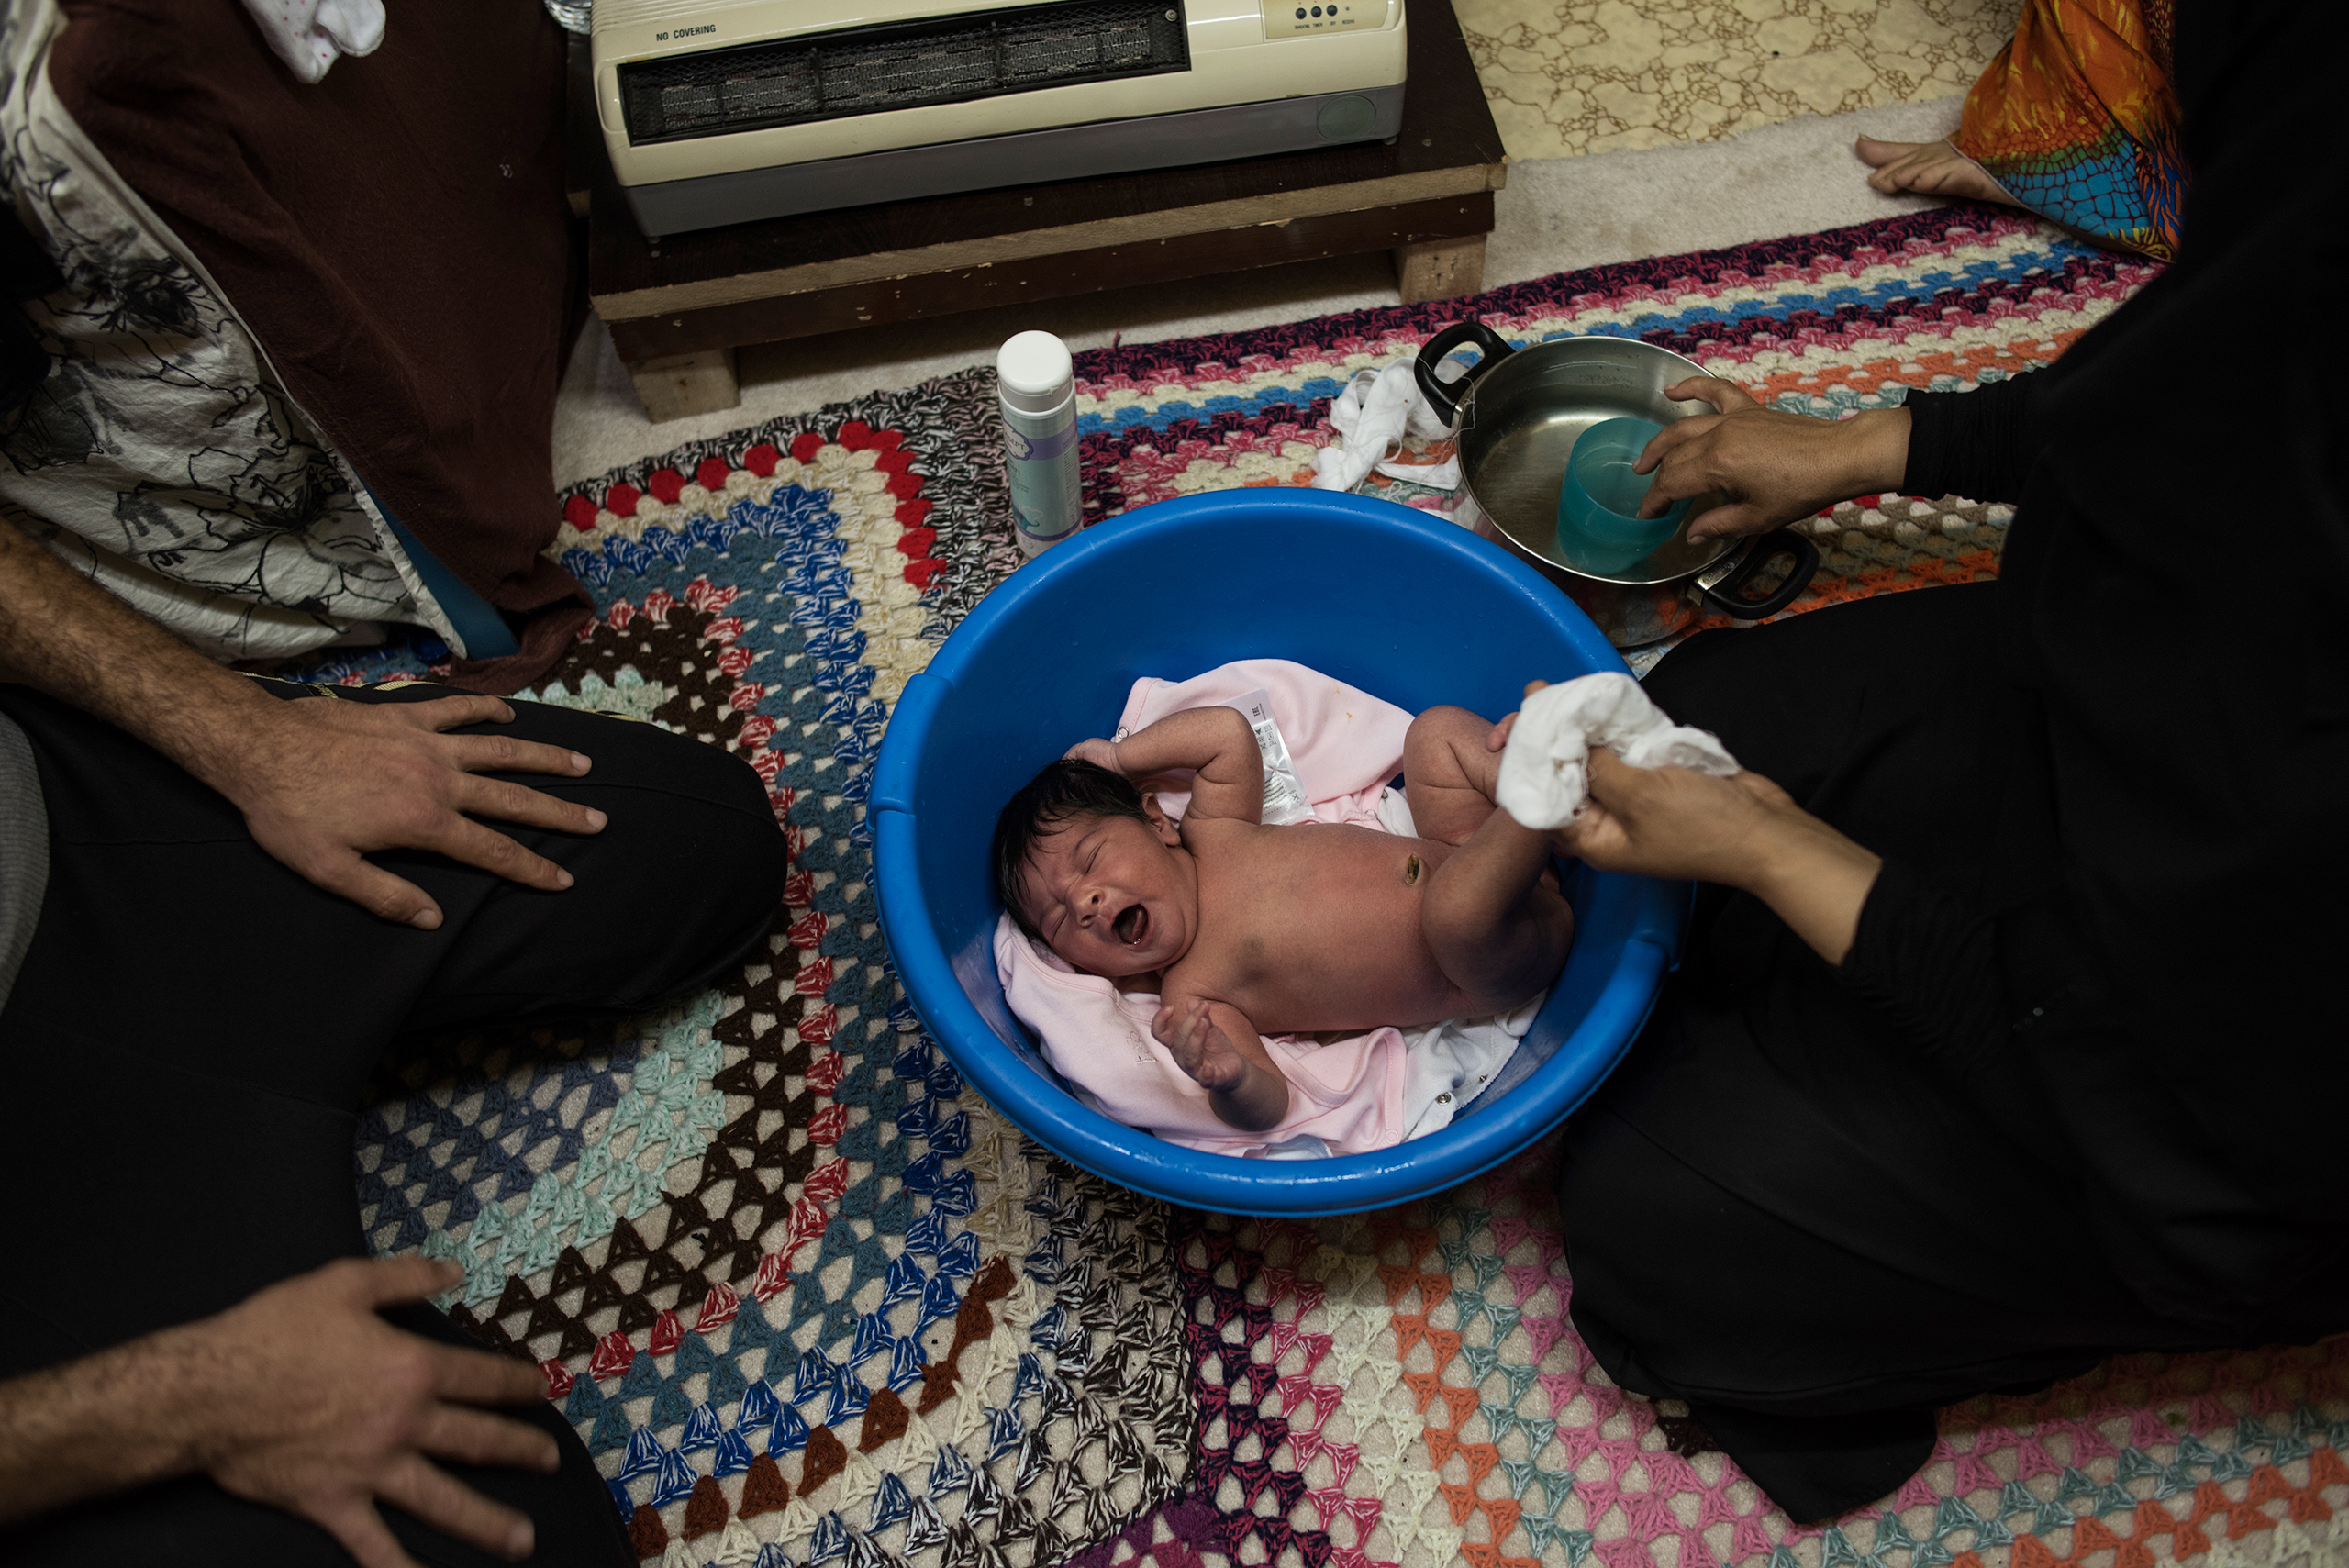 Syrian refugee Hayat bathes baby Rahaf, born one week earlier, next to a heater, at the Oreokastro camp in Thessaloniki, Greece, on Nov. 8, 2016. Rahaf was born to Noor Alhouda Talaa, 22, and Yusuf Arsan, 27.